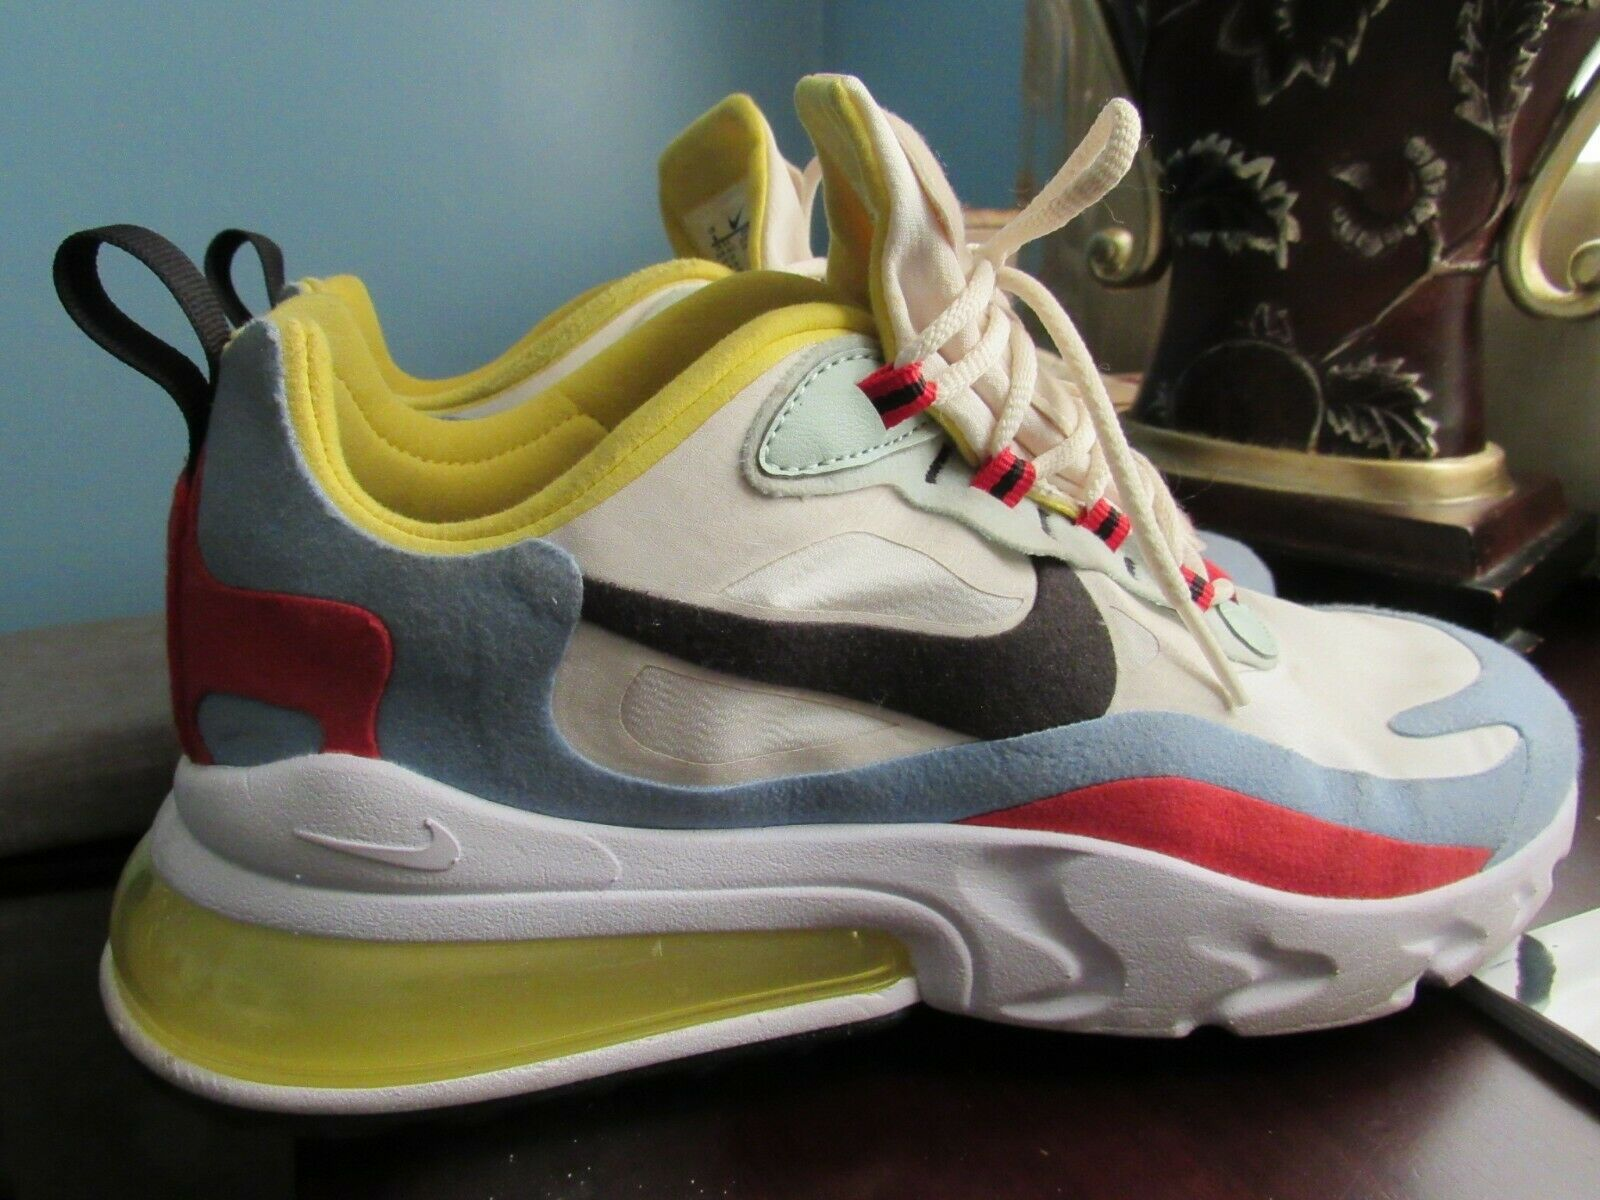 Nike Womens Air Max 270 React Shoes Size 9 Blue White Red Yellow